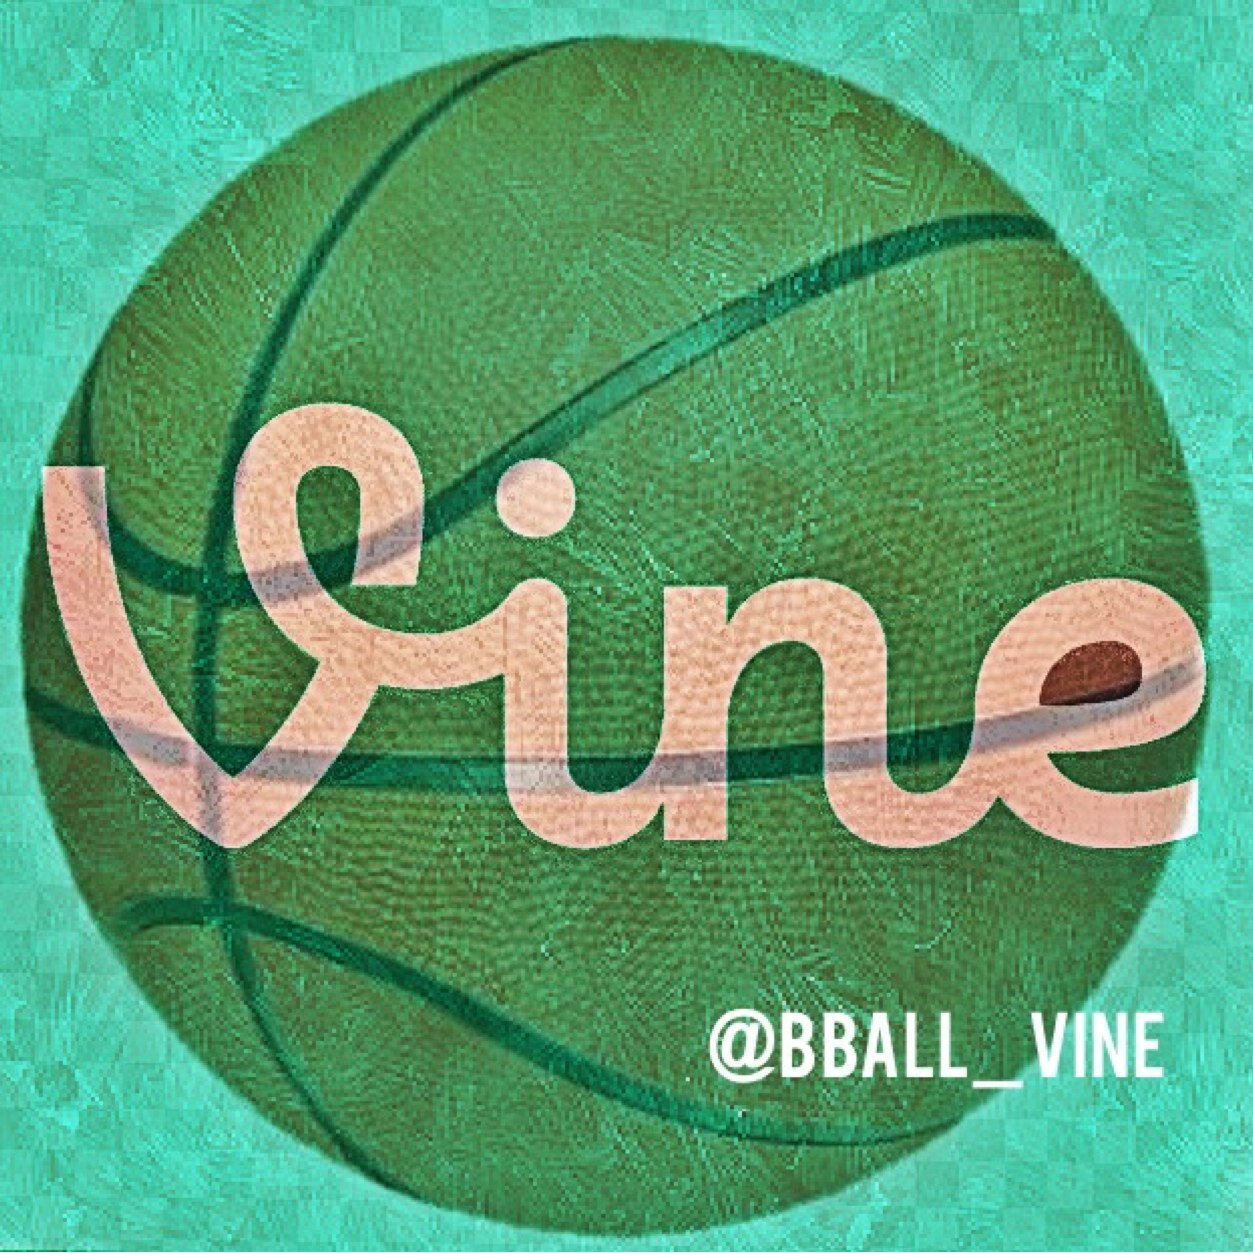 """Basketball Vines on Twitter: """"Robert Bobroczky a 7'4 13 year old ..."""